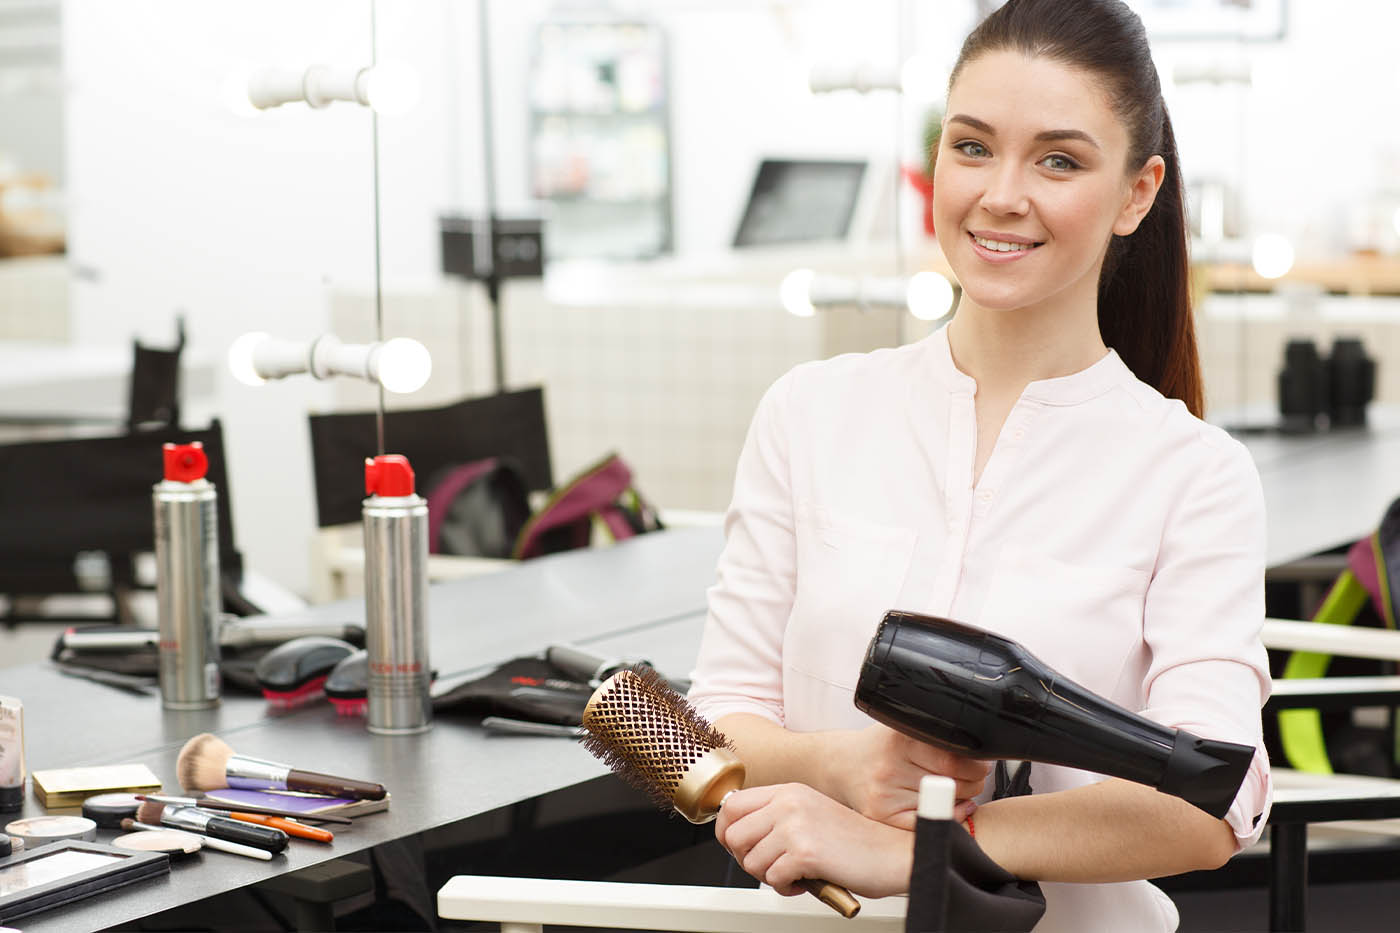 Latest salon hair gadgets to have in 2021